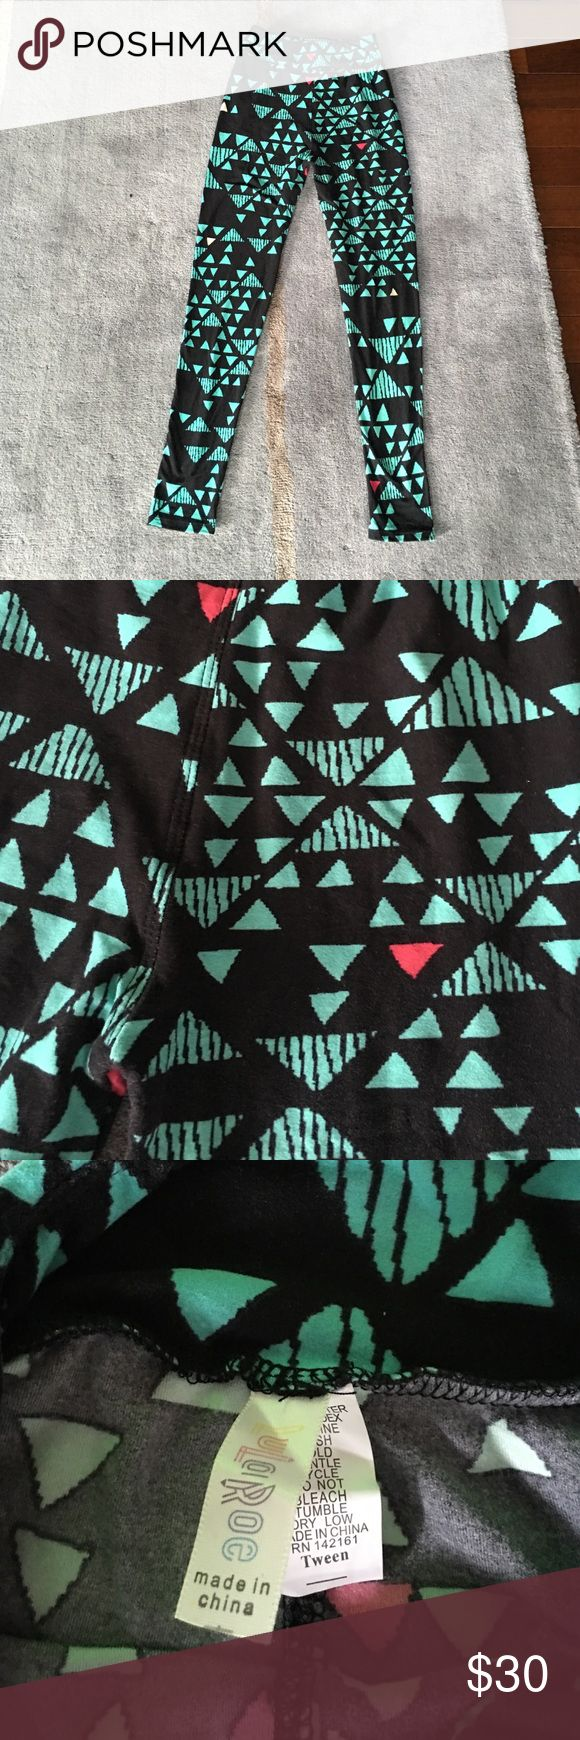 LulaRoe Tween leggings LulaRoe Tween leggings. black, teal, and a touch of magenta. Worn once. Excellent condition. Older pattern - Haven't seen it since purchased. LuLaRoe Pants Leggings